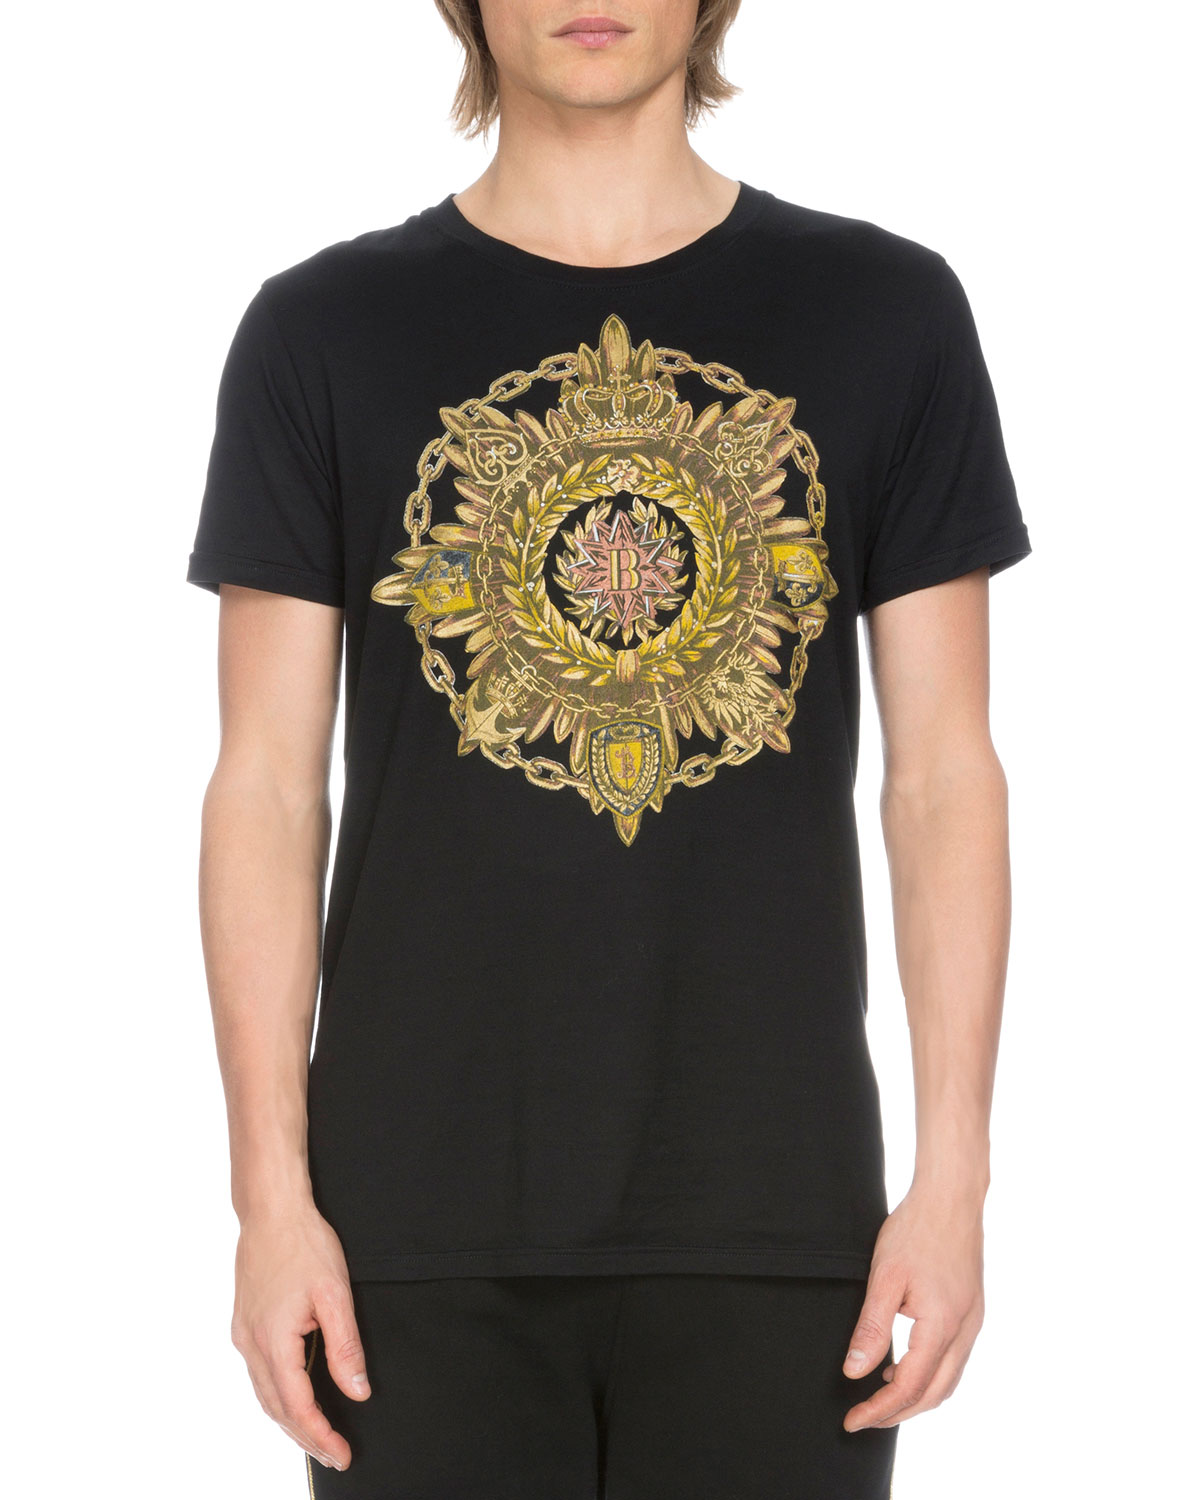 Short-Sleeve Medallion Logo T-Shirt, Black